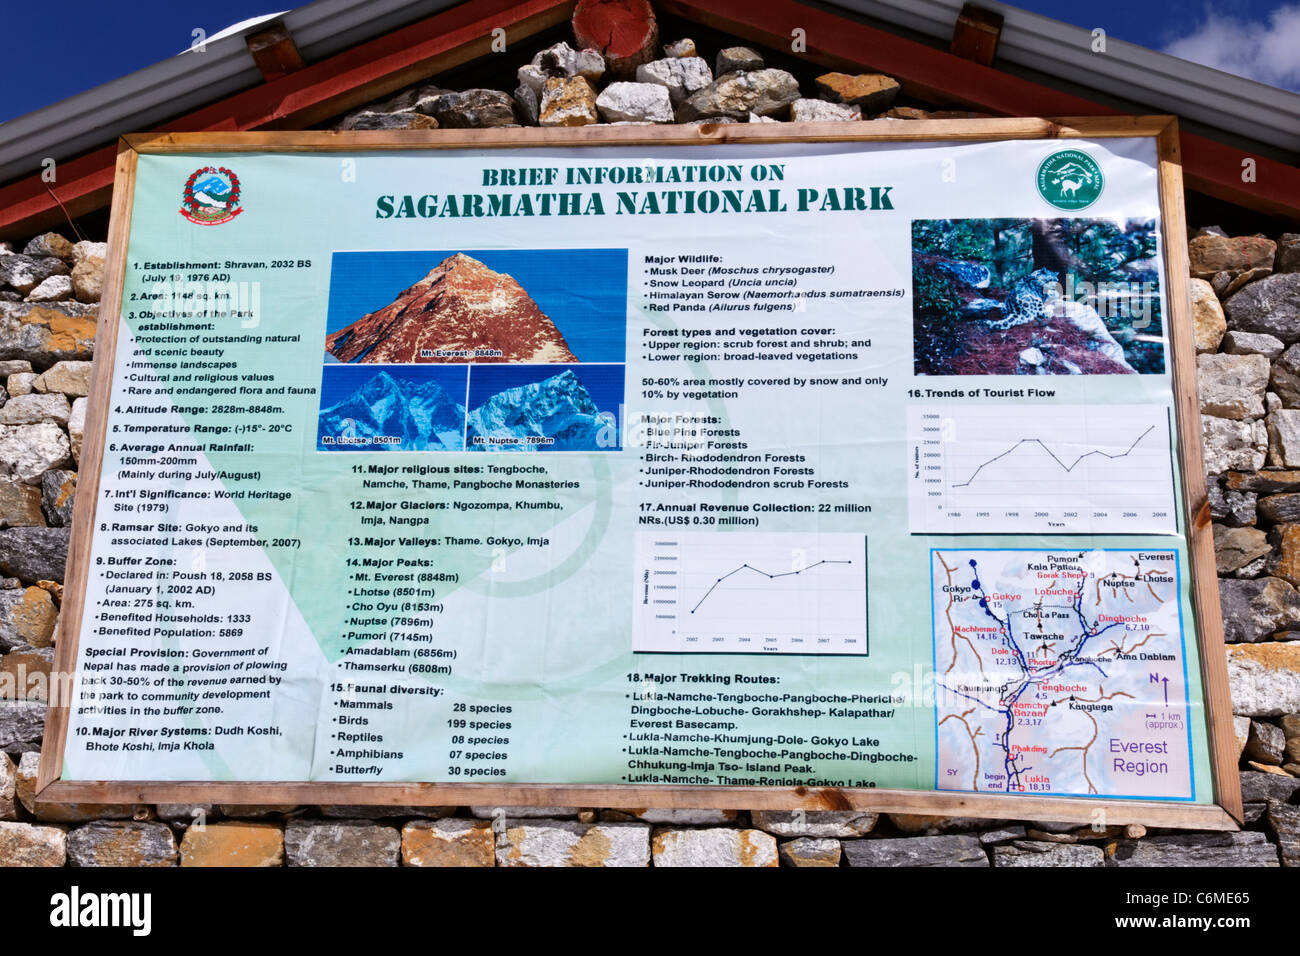 Sign showing information about Sagarmatha National Park, Tengboche, Everest Region, Nepal - Stock Image